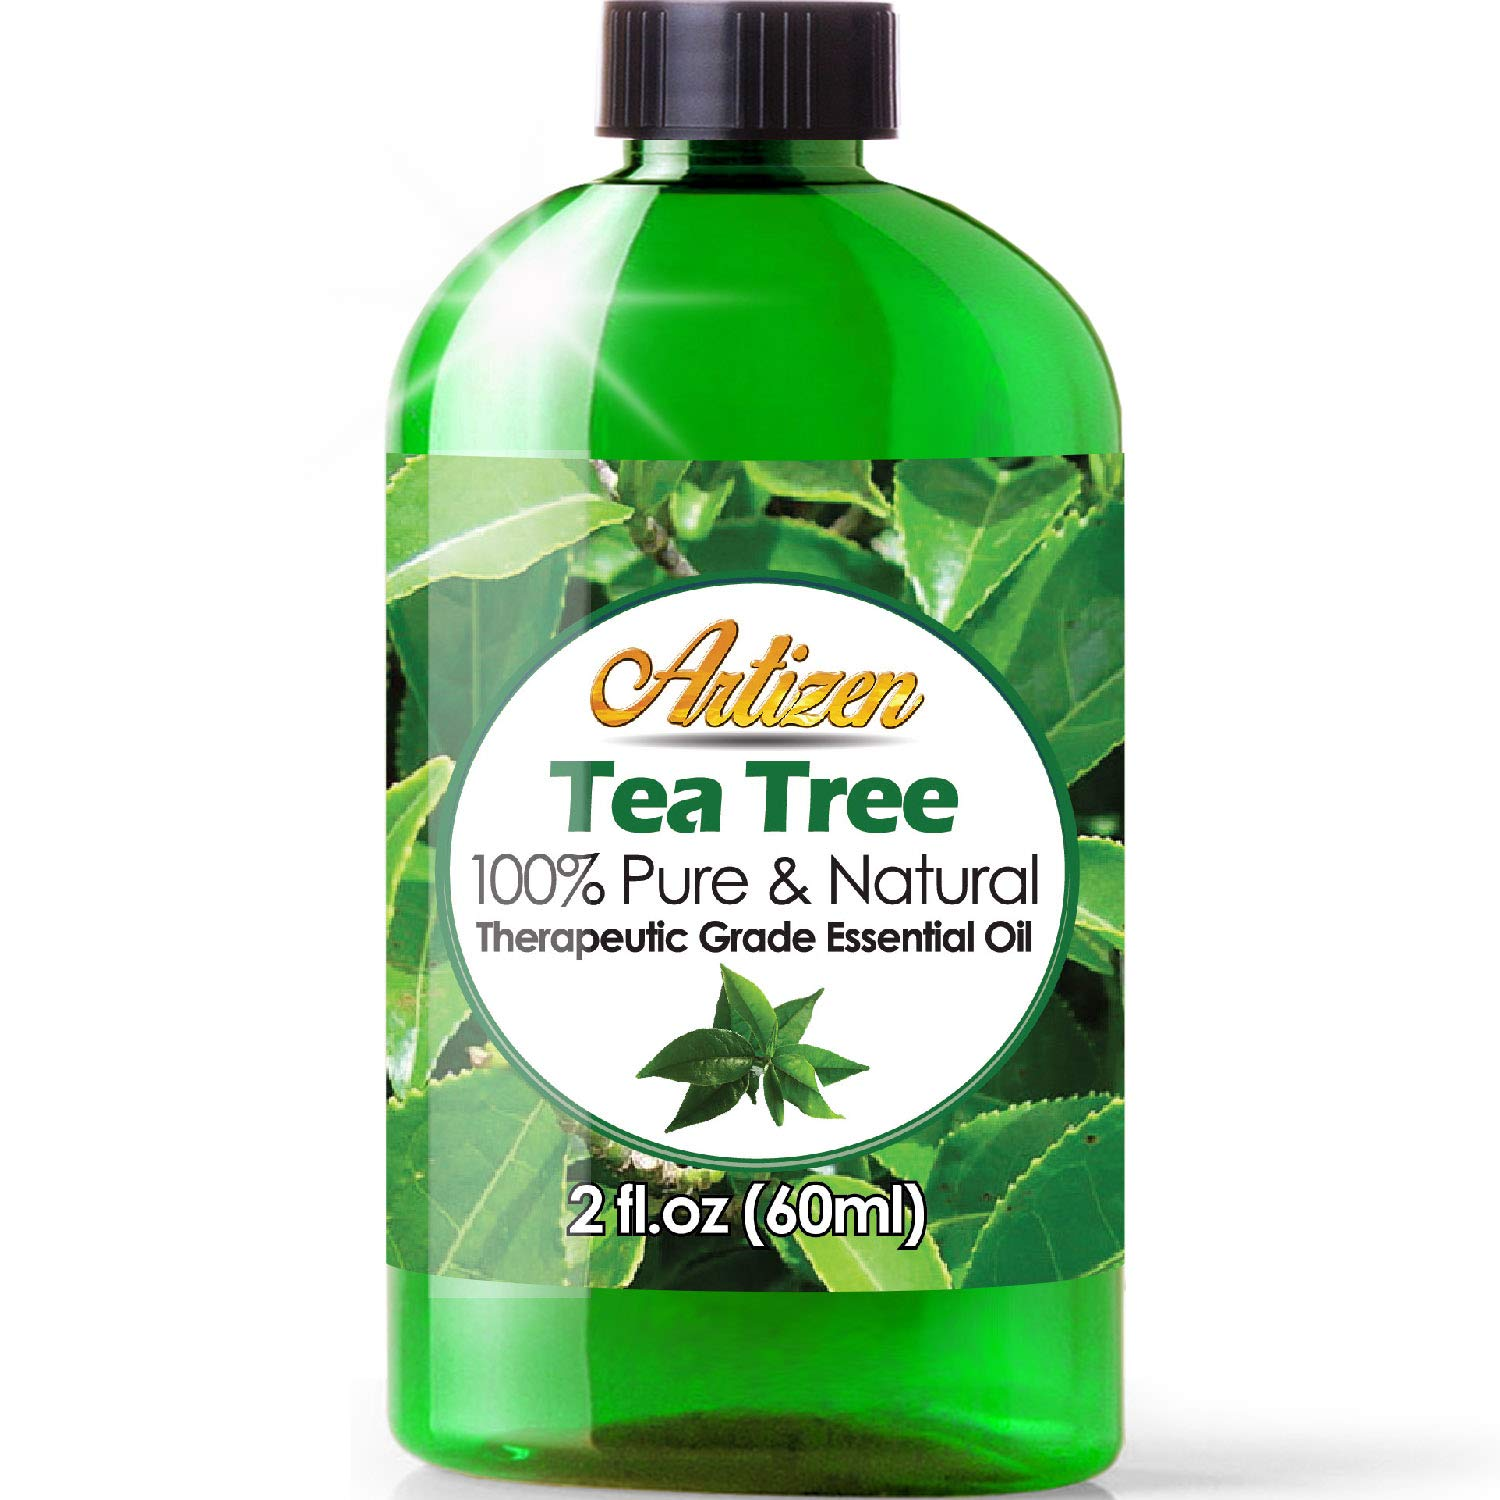 2oz - Artizen Tea Tree Essential Oil (100% Pure & Natural - UNDILUTED) Therapeutic Grade - Huge 2 Ounce Bottle - Perfect for Aromatherapy by Artizen